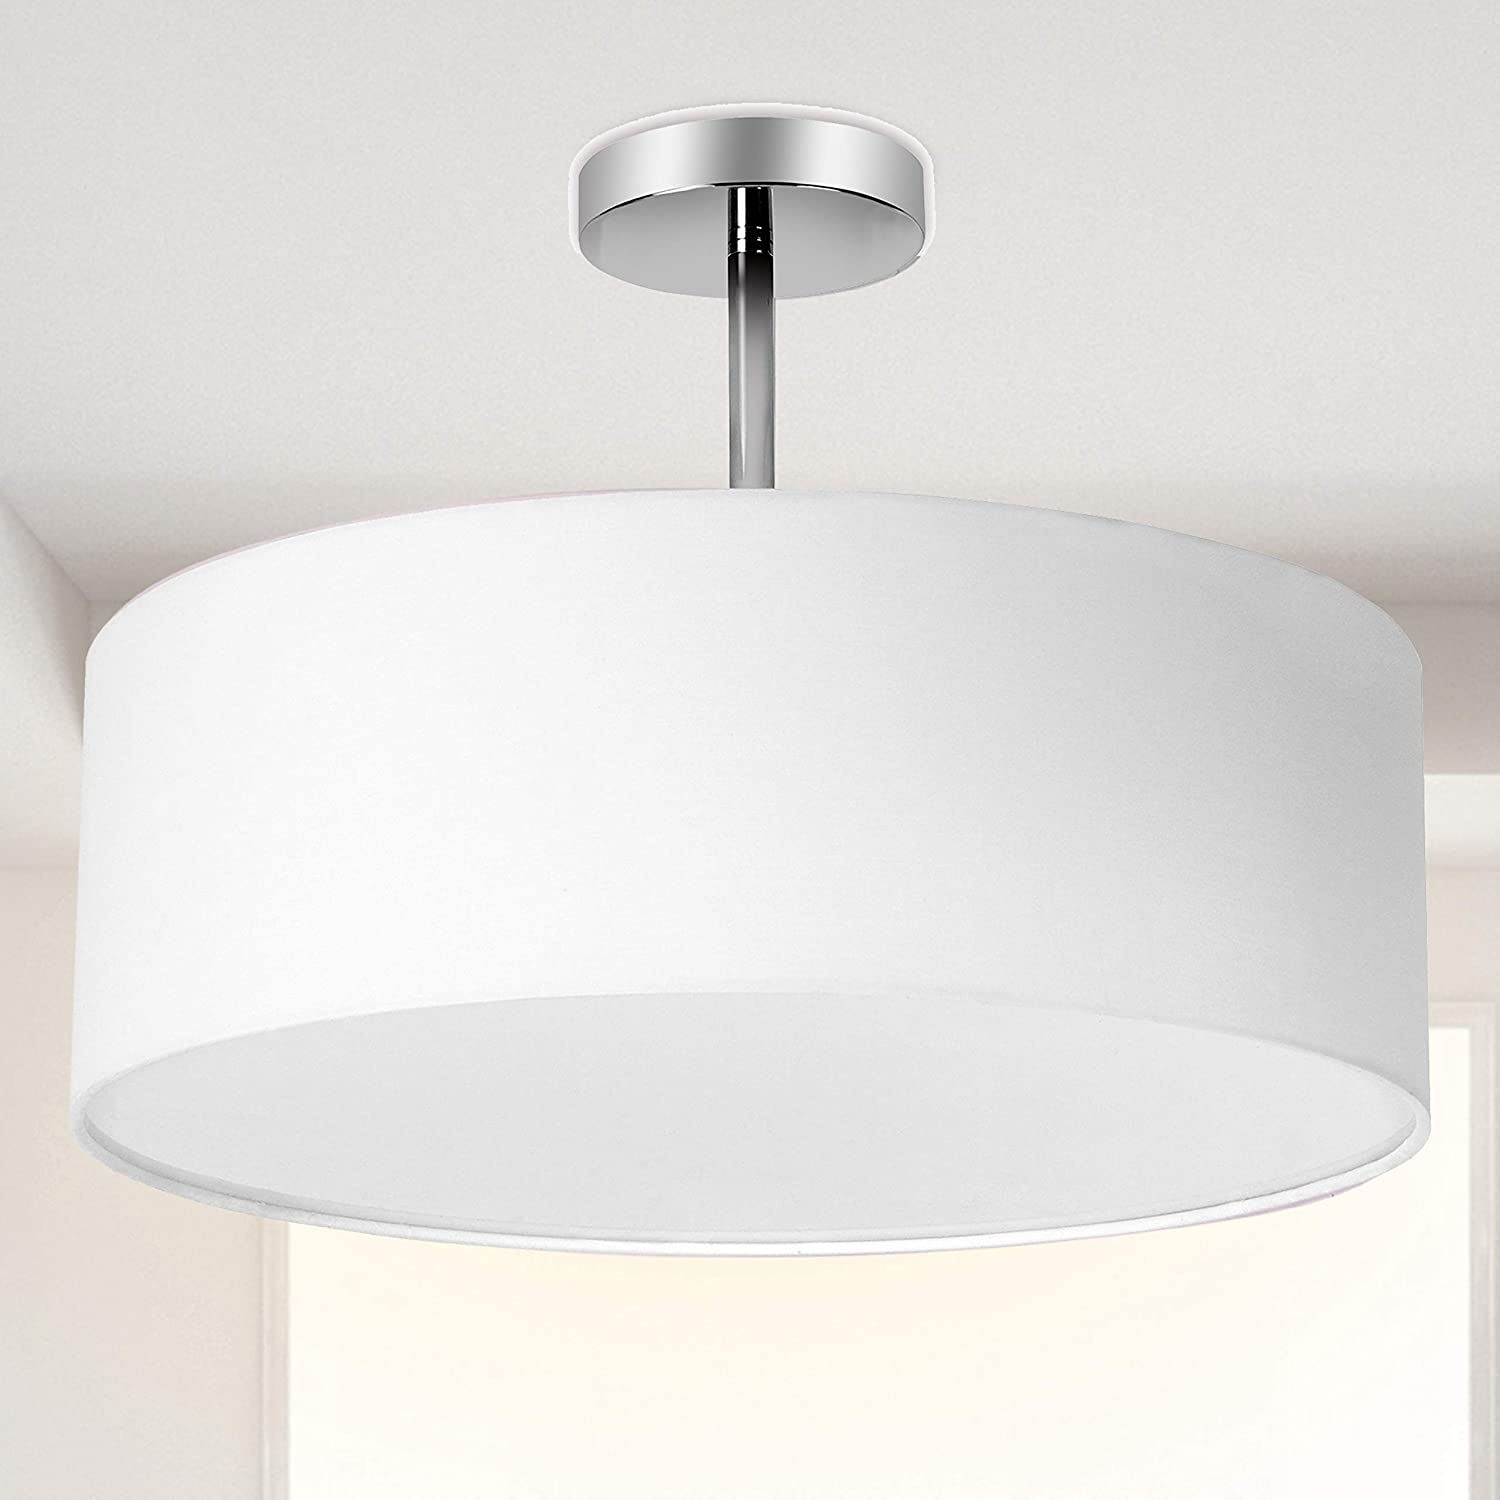 Ceiling Light, Semi-Flush Mount Modern Fabric Pendant Light Shade, Large  White Drum Lampshade, Round Pendant Lamp, Lamps for bedrooms, Flush Chrome